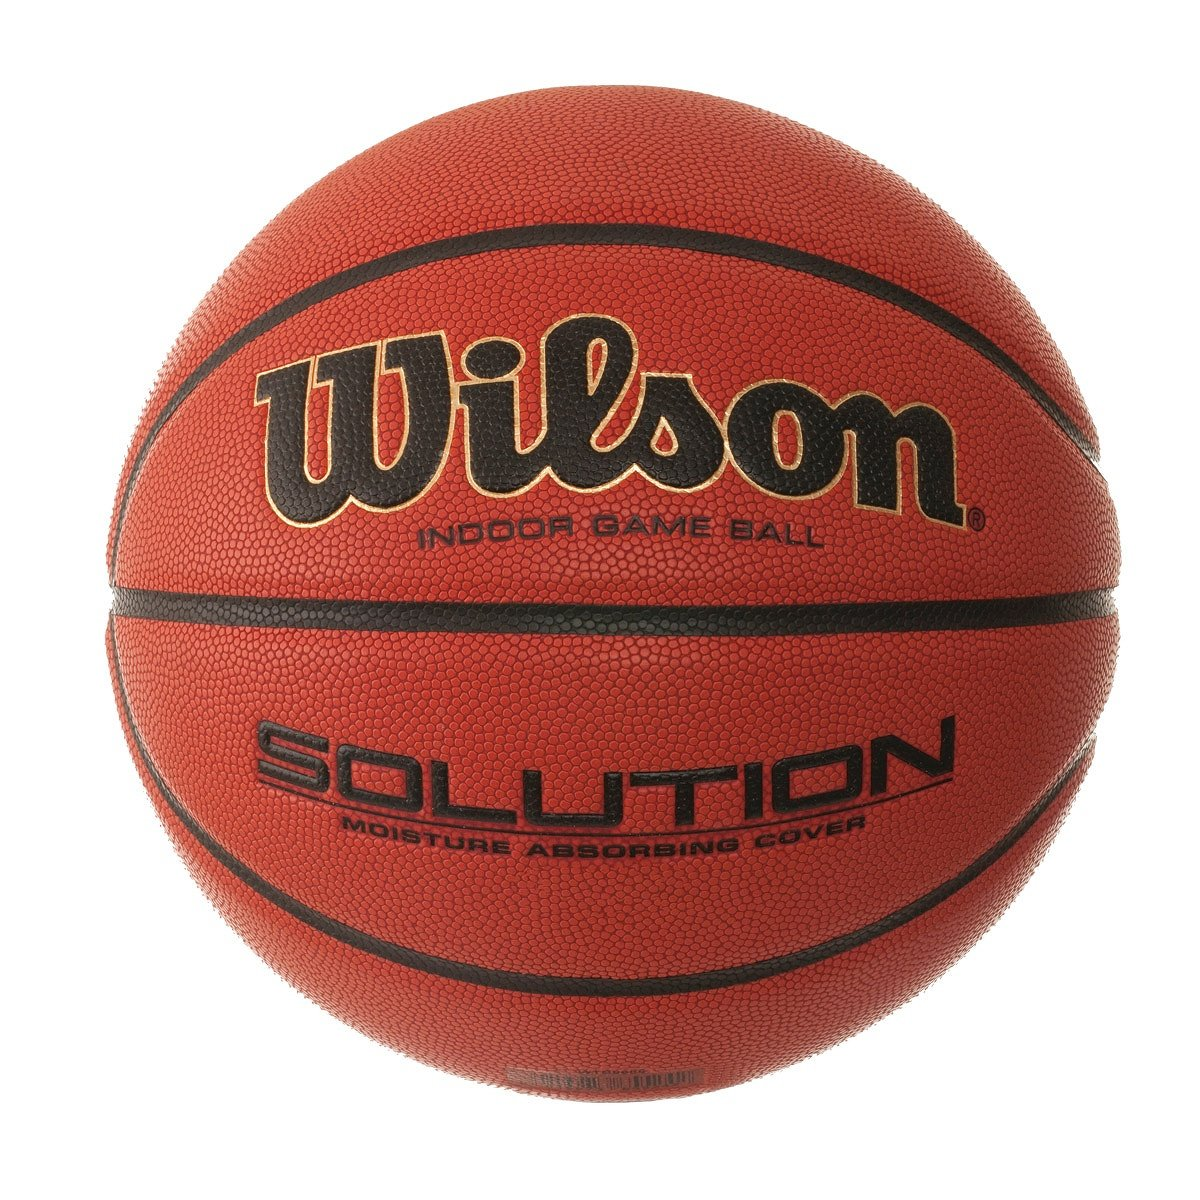 Wilson Indoor-Basketball, Wettkampf, FIBA zugelassen, Sportparkett, Granulat, Linolium- oder PVC-Boden, Solution Game Ball